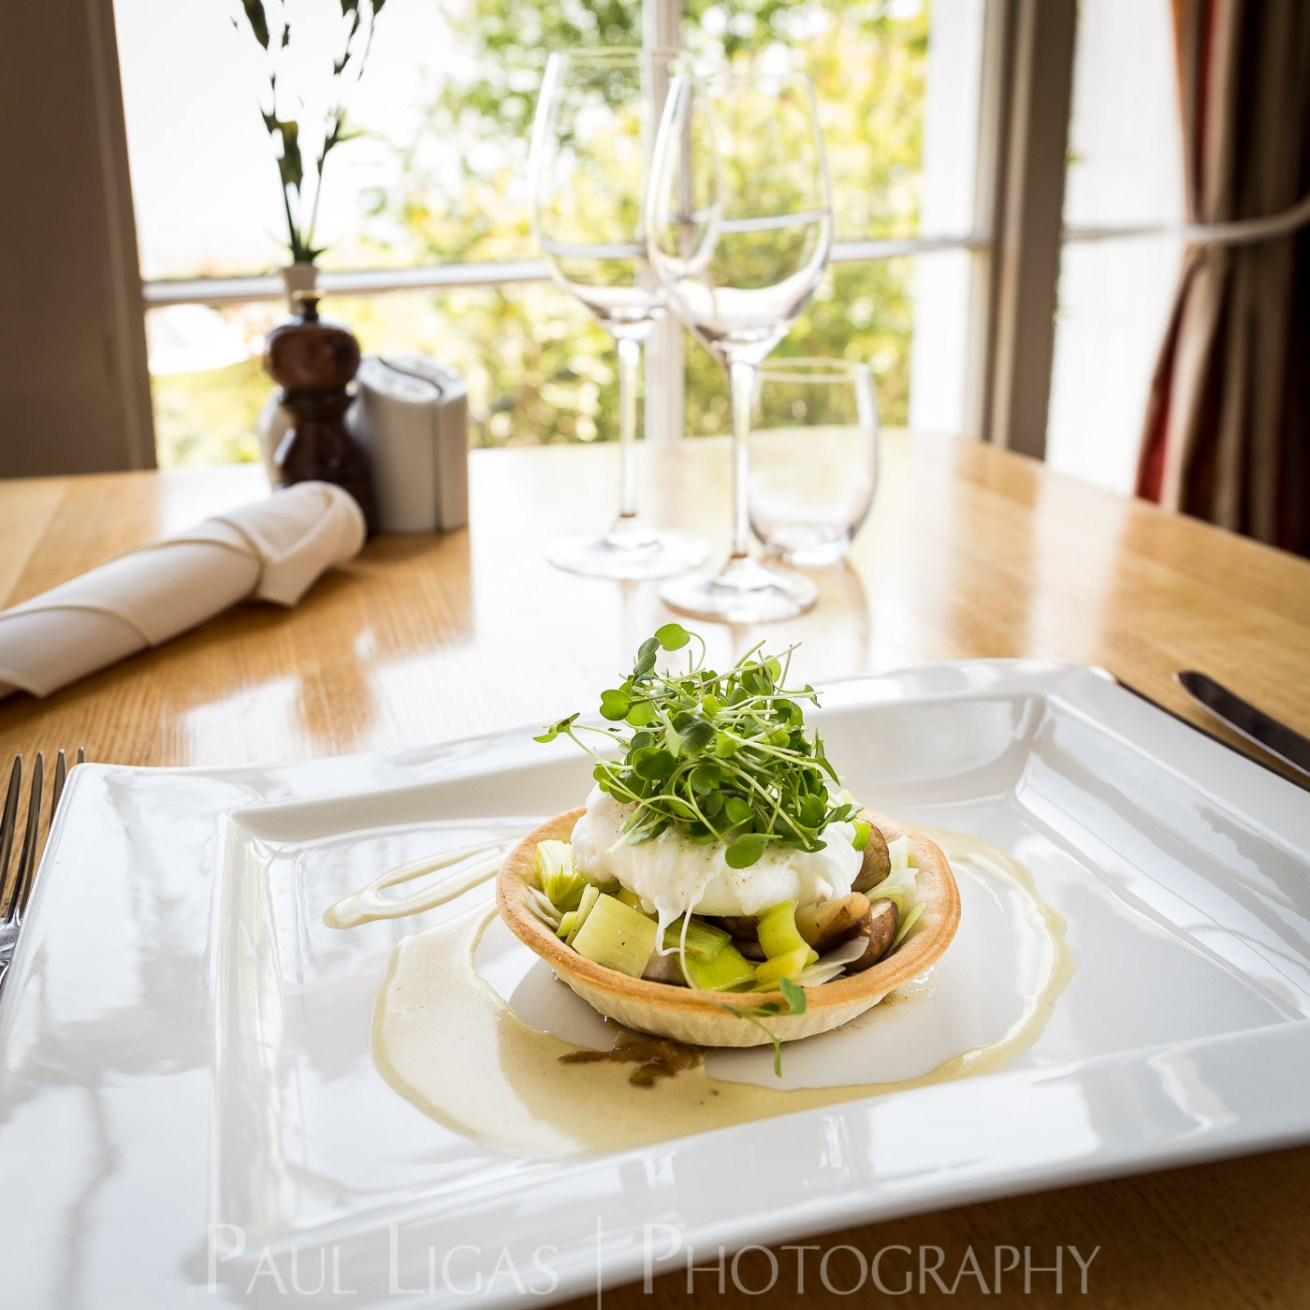 The Cottage In The Wood, Malvern, Worcestershire food photographer Herefordshire photography 7753